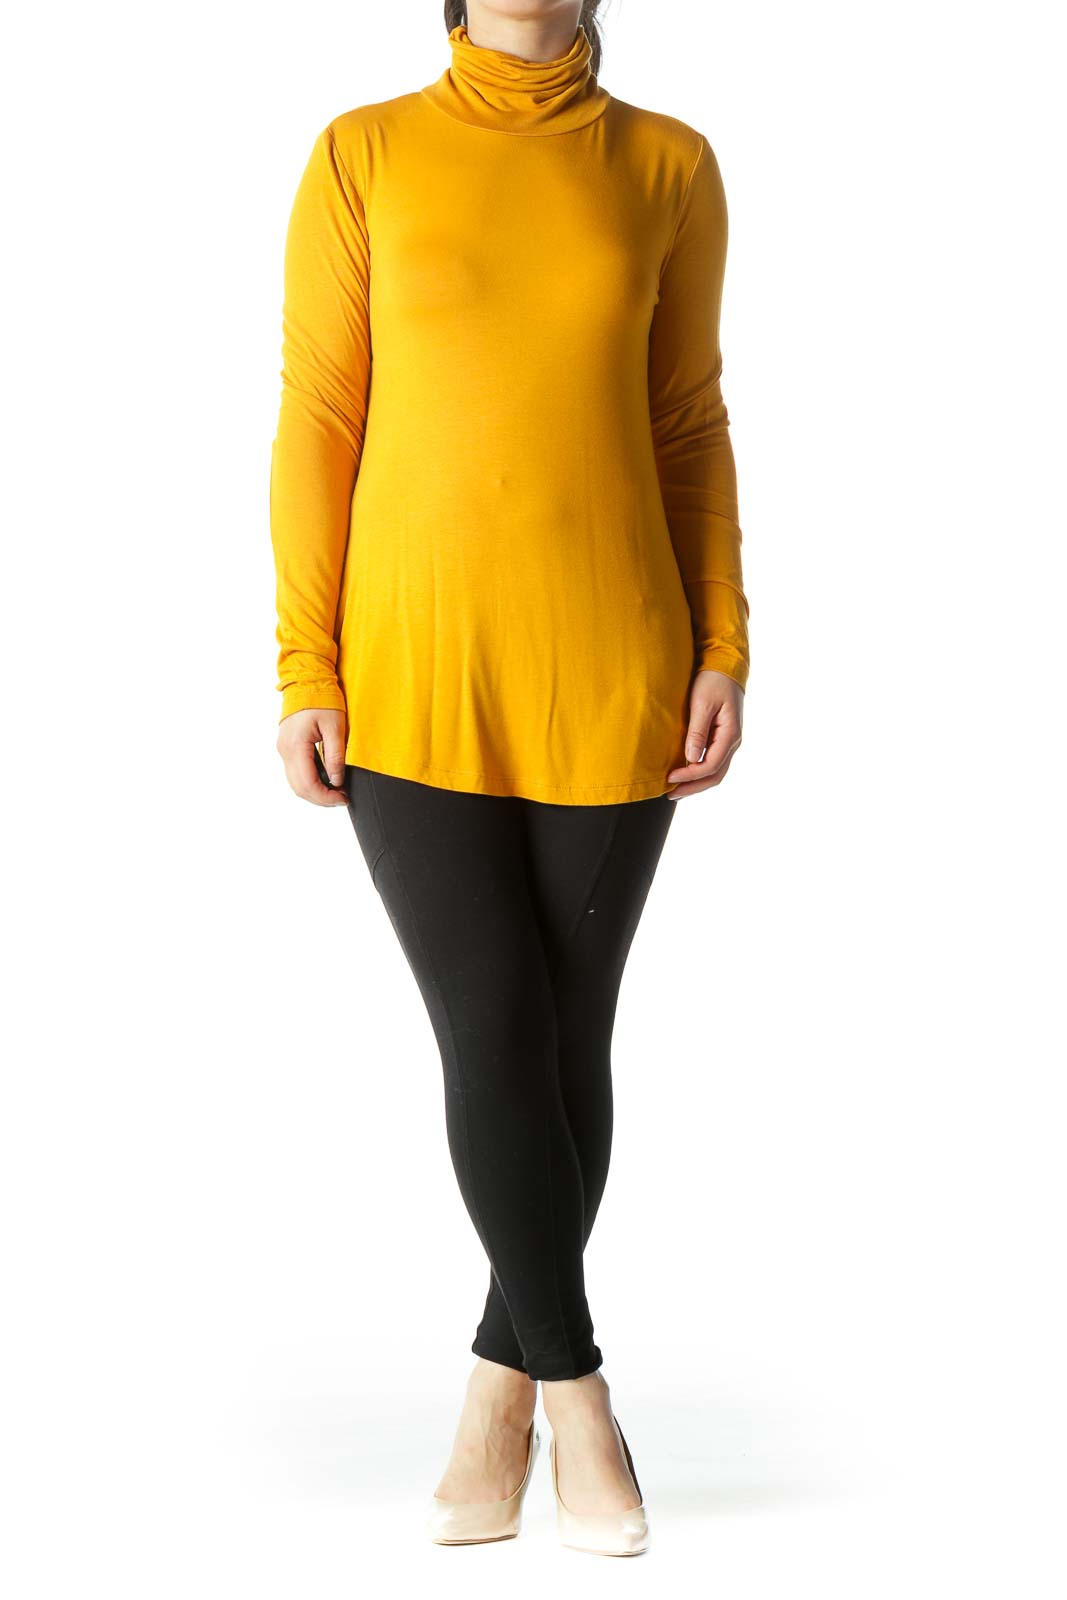 Mustard Yellow Turtle Neck Stretch Long-Sleeve Top